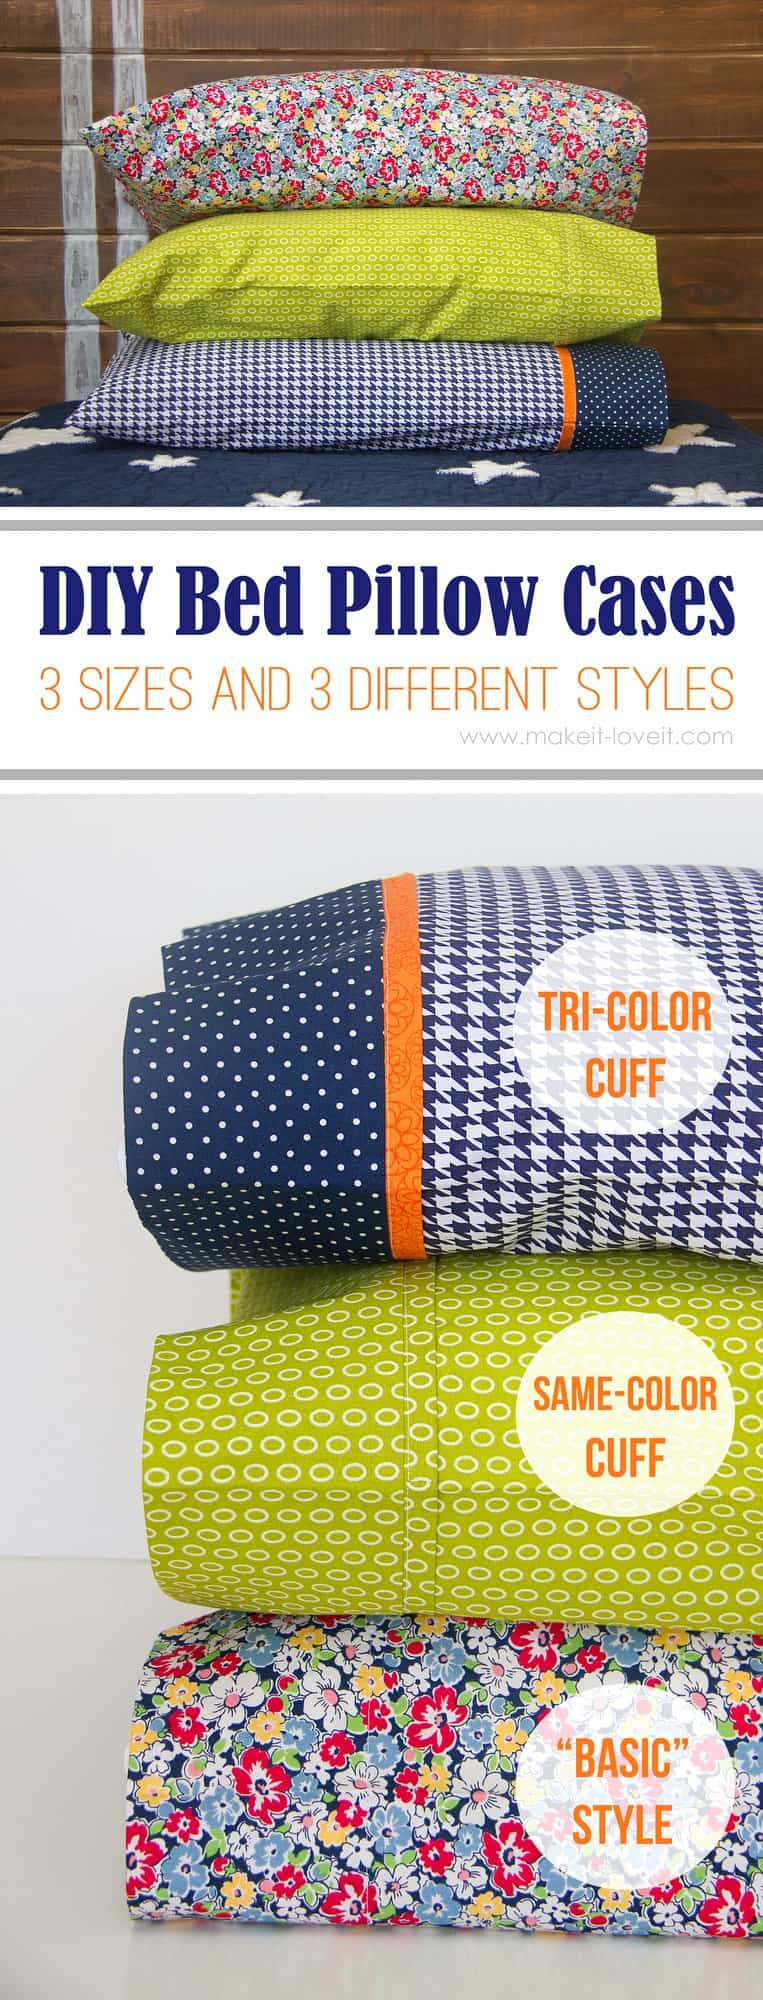 DIY-Bed-Pillow-Cases-3-sizes-and-3-styles-1